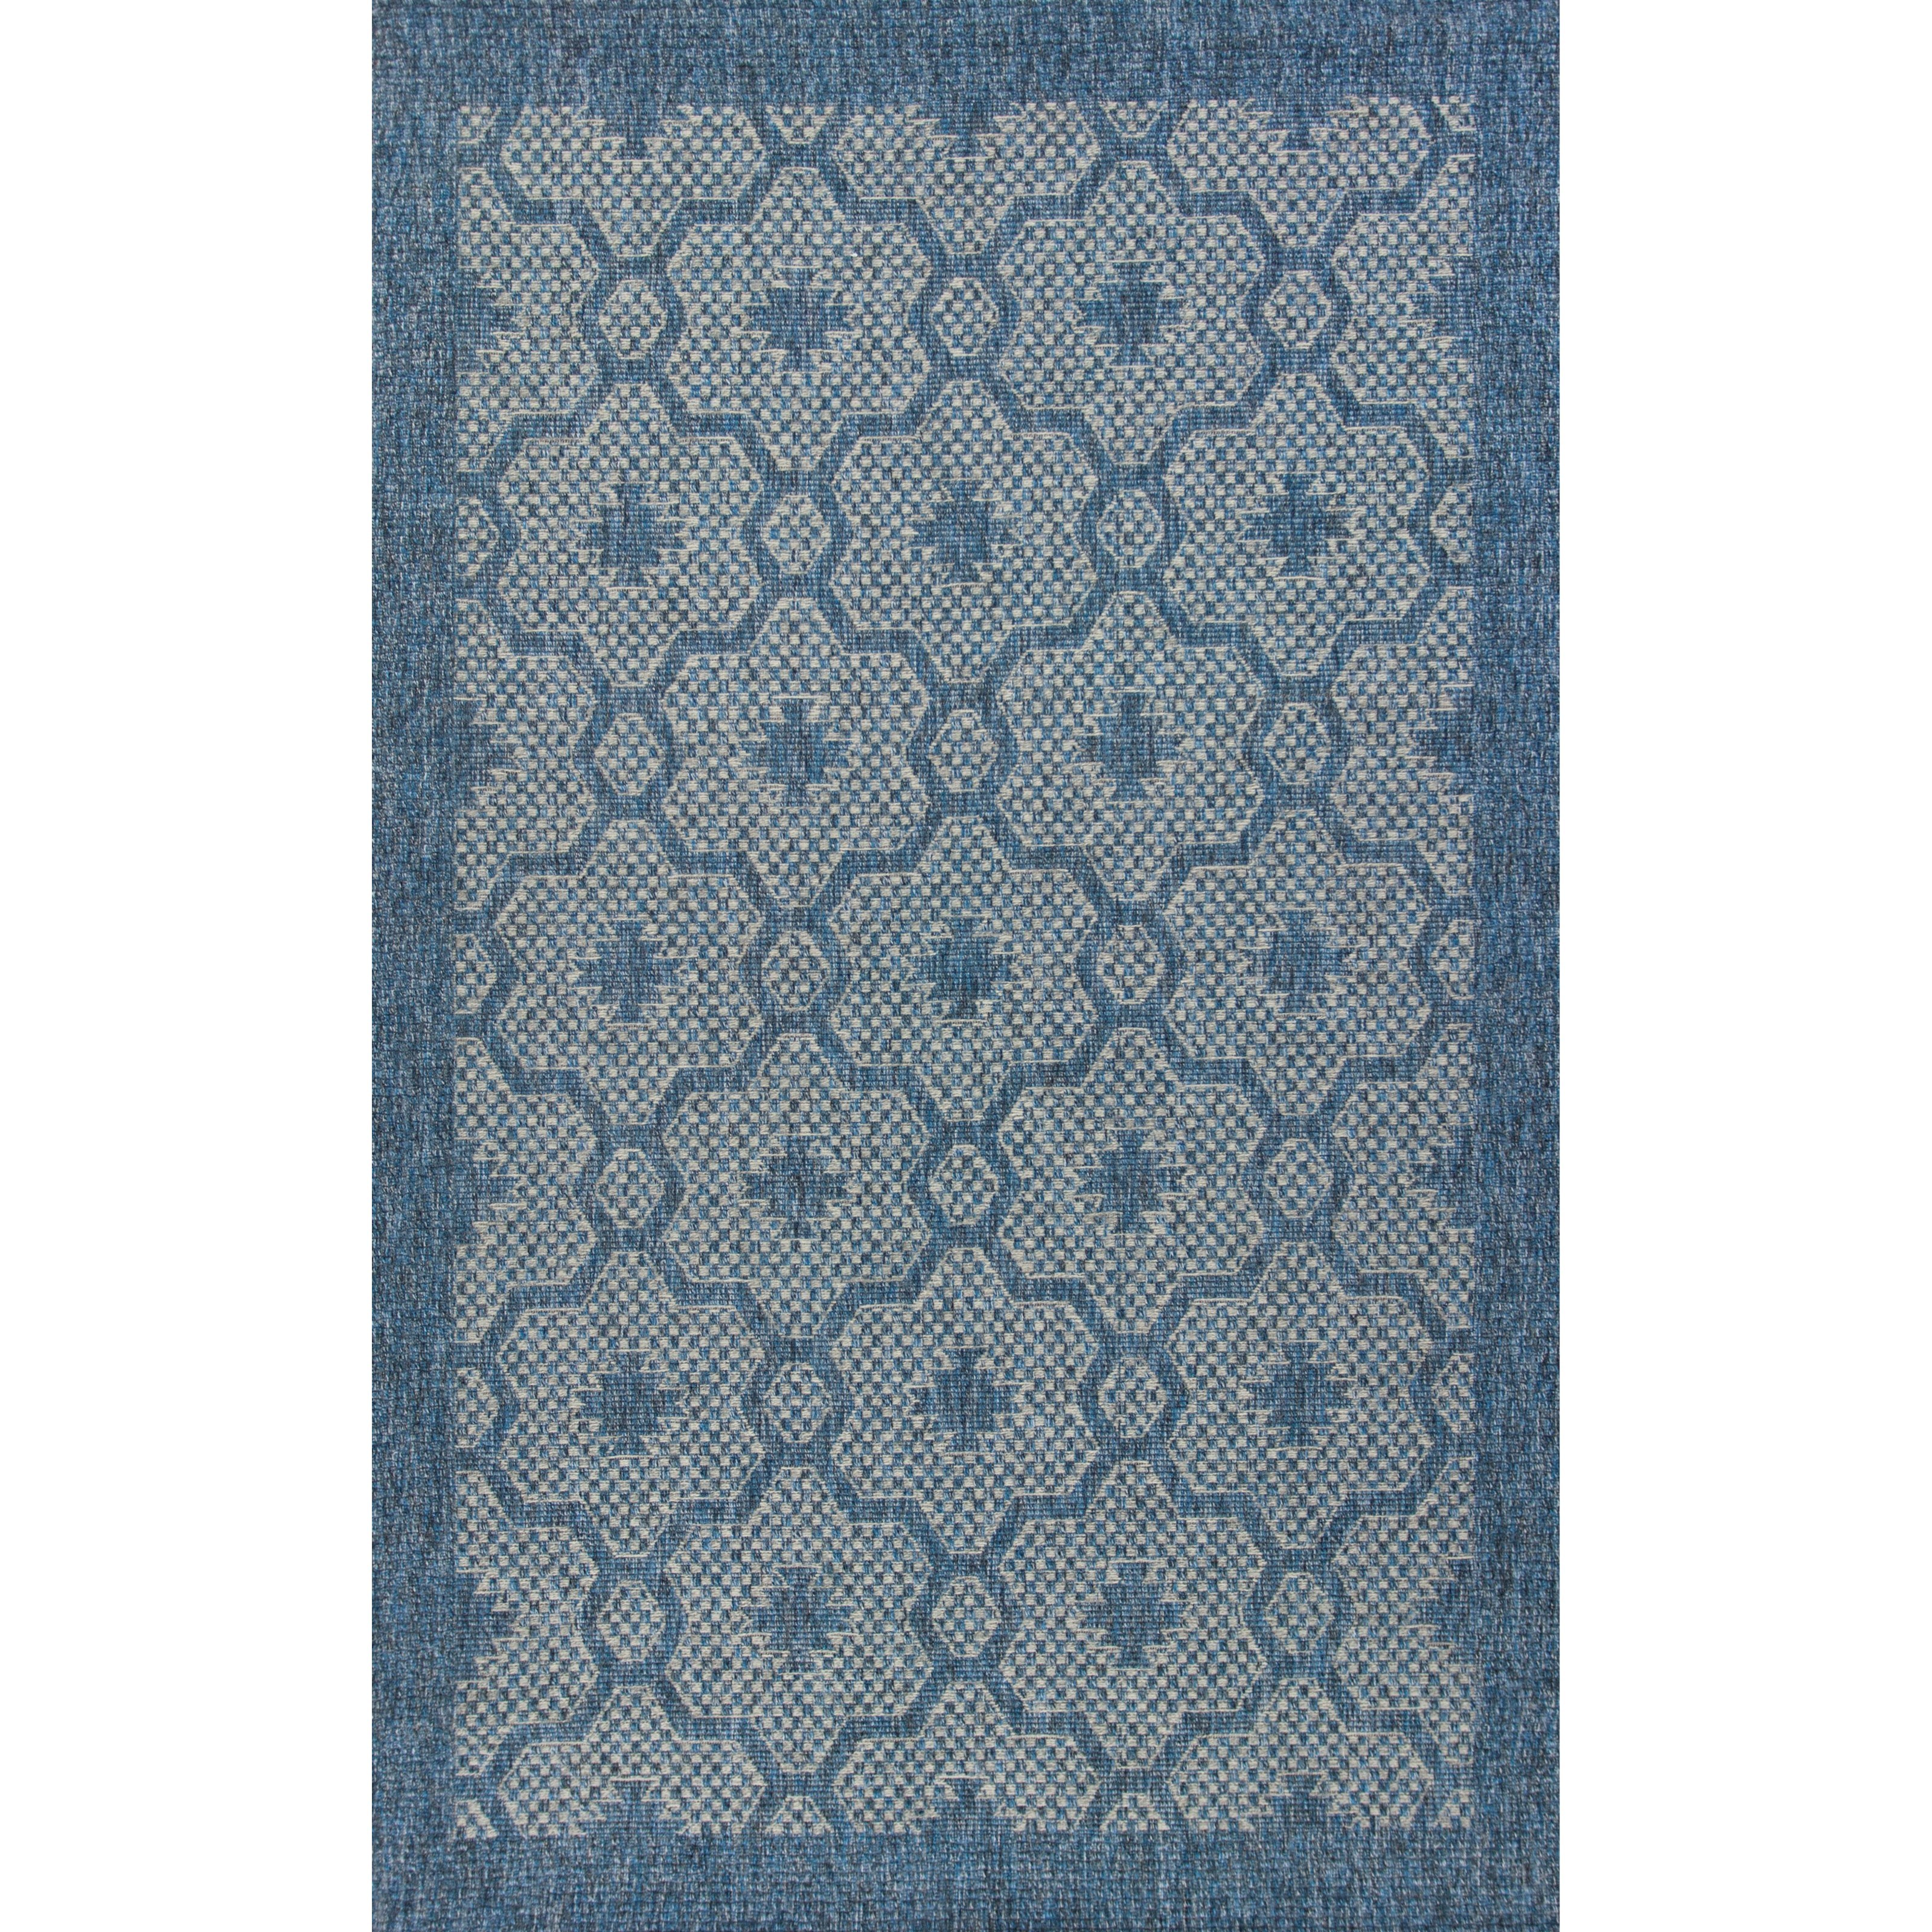 "Farmhouse 7'7"" X 5' Area Rug by Kas at Zak's Home"